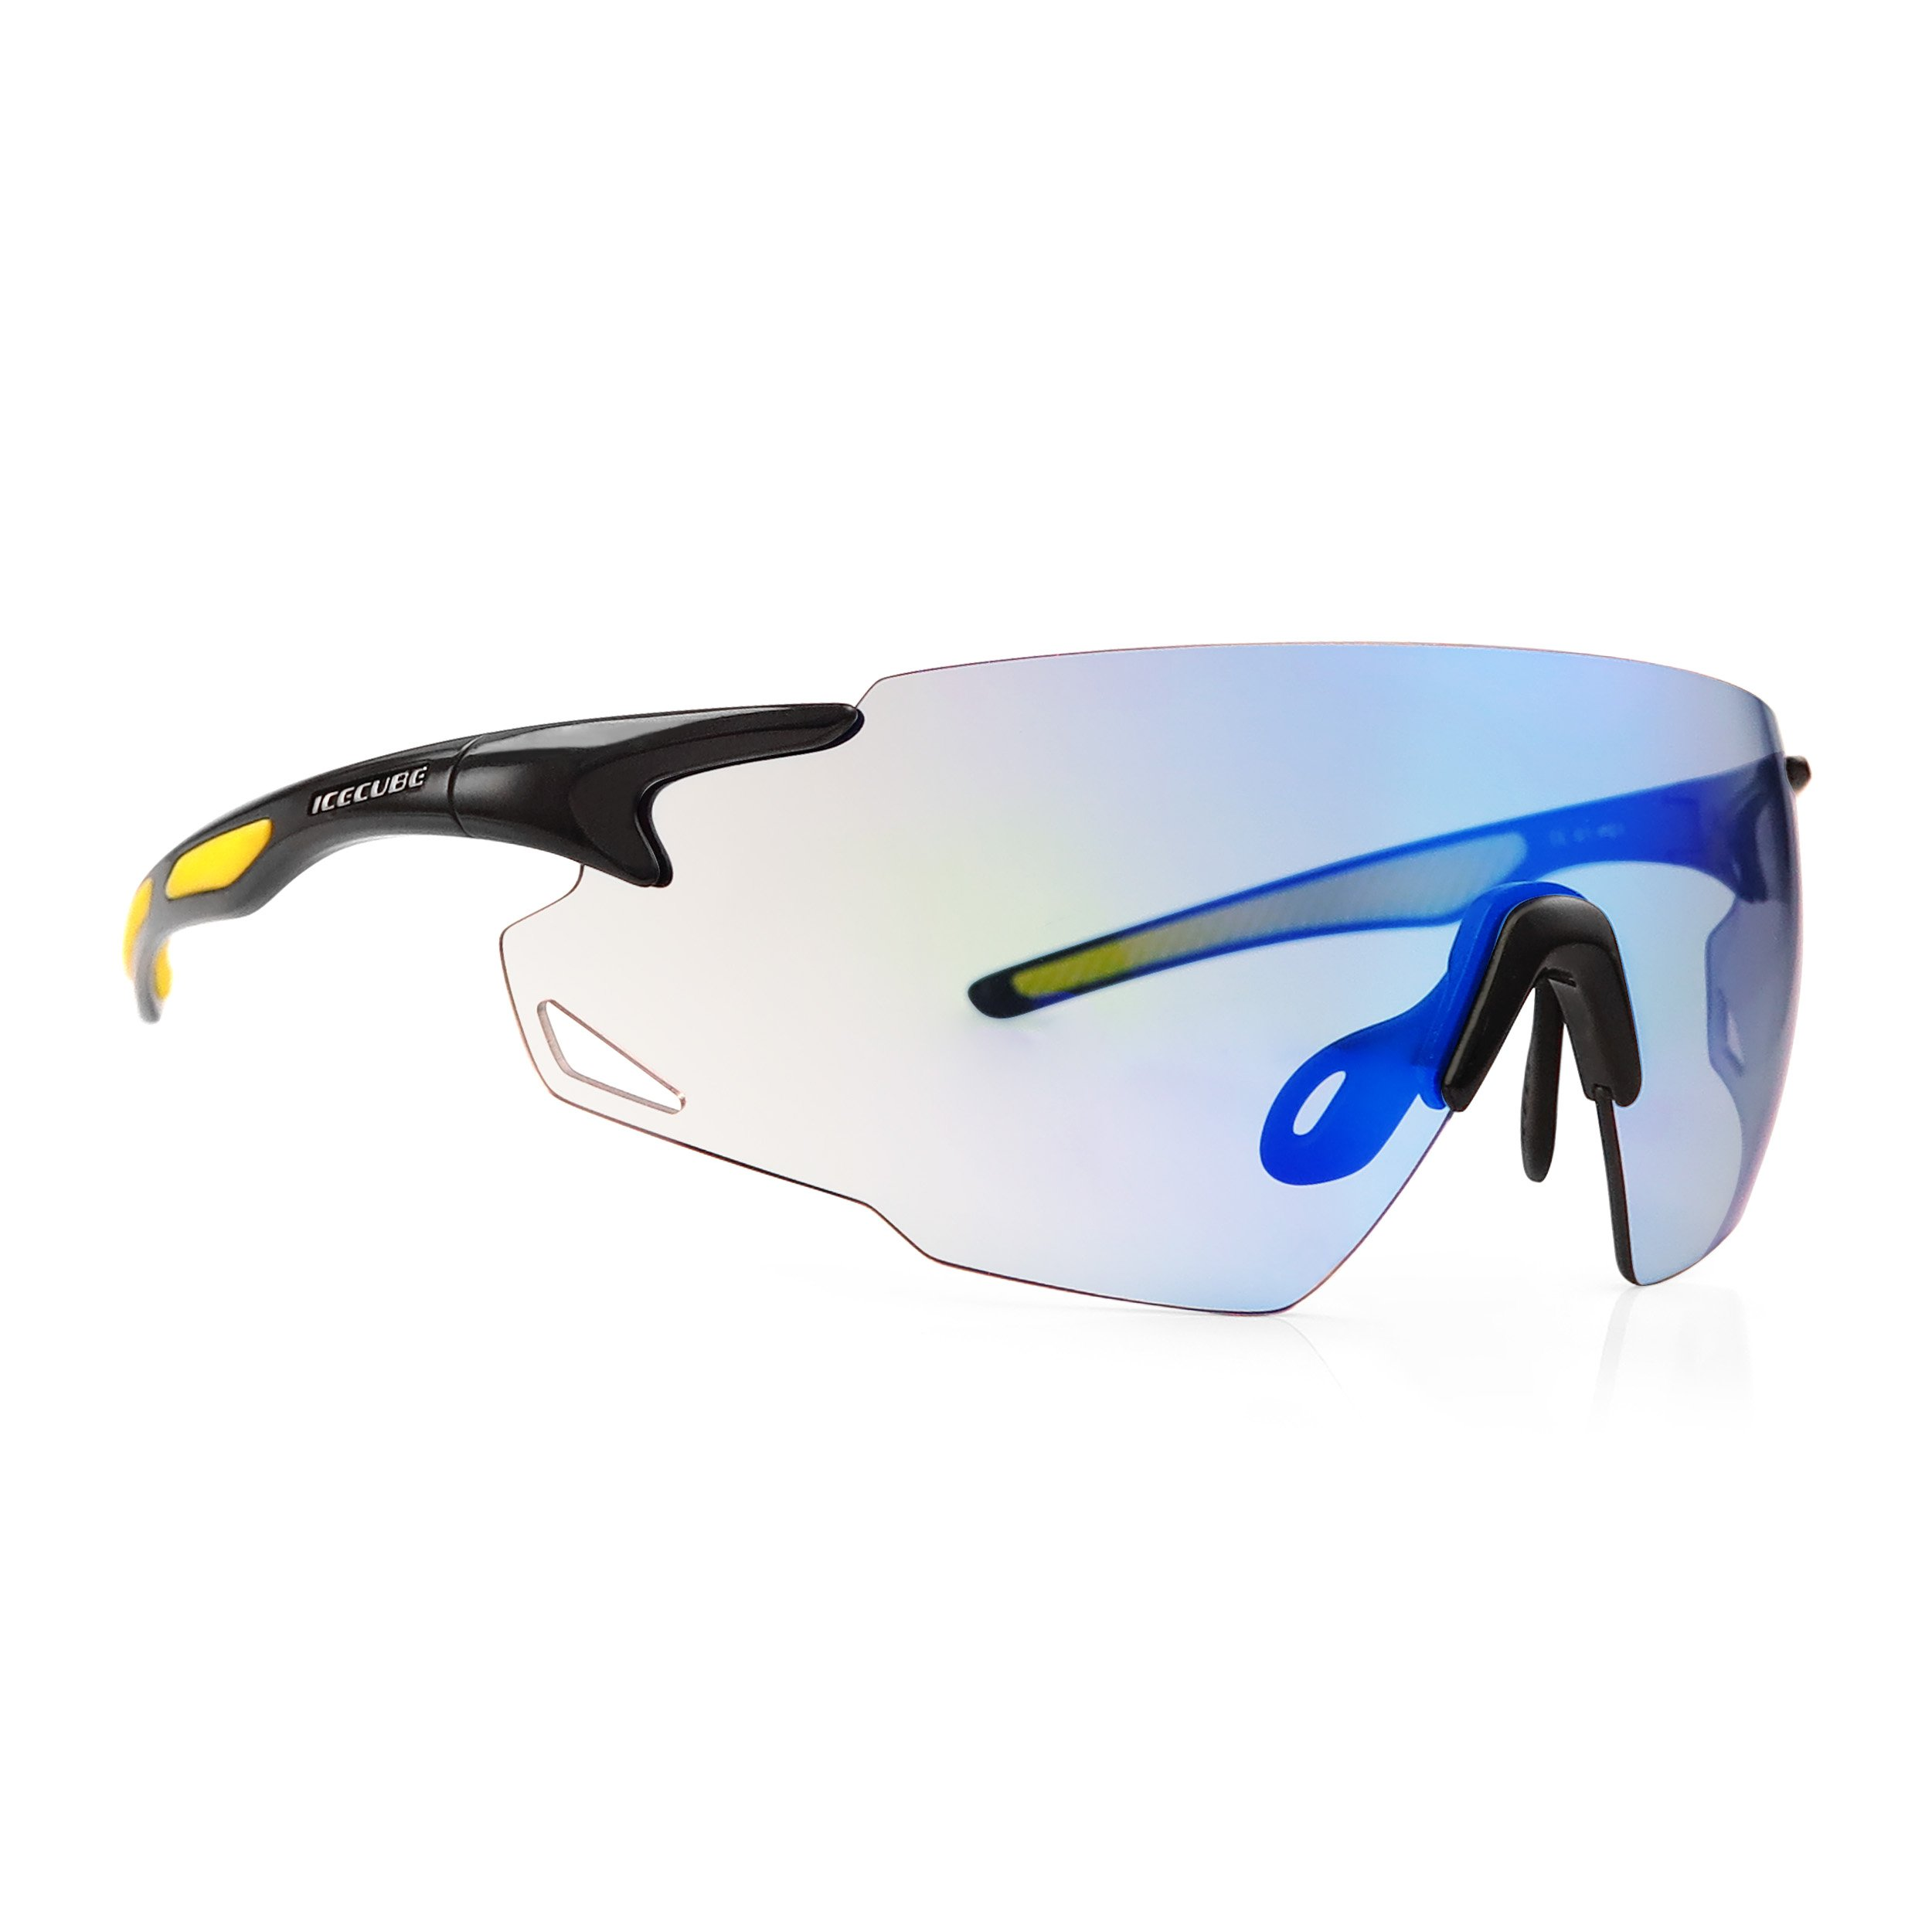 ICECUBE Asian Fit Photochromic Sports Sunglasses | Men or Women| UV Protection | TR90 Ultra Light | Suitable for Running, Driving, Beach, Fishing - COMBUST (Black, Blue Mirror)